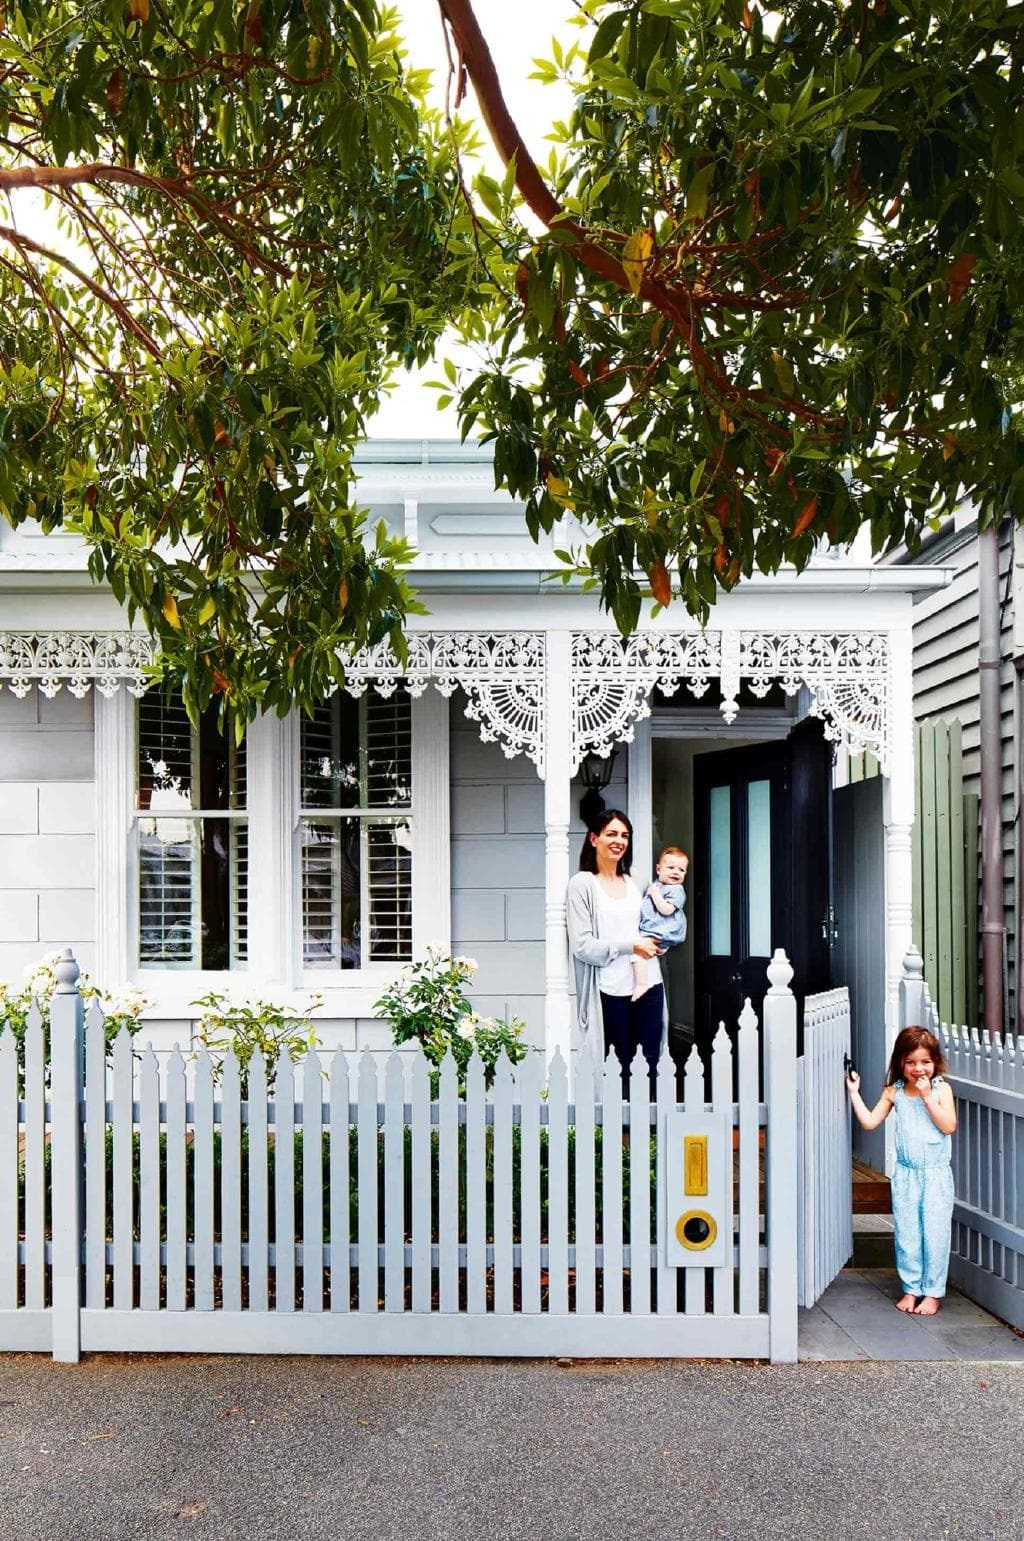 """This Victorian-era cottage with a pretty facade ticked all the boxes for its owners Todd and Rachel. Even though the pair were happy to judge a book by its cover, they found it ticked all the boxes: not only did it have a modern rear extension perfect for their growing family, but it is also positioned on a large corner block near the seaside. Since purchasing it, the pair have given the home a [Scandinavian style makeover](https://www.homestolove.com.au/scandinavian-style-makeover-in-the-heart-of-melbourne-17515